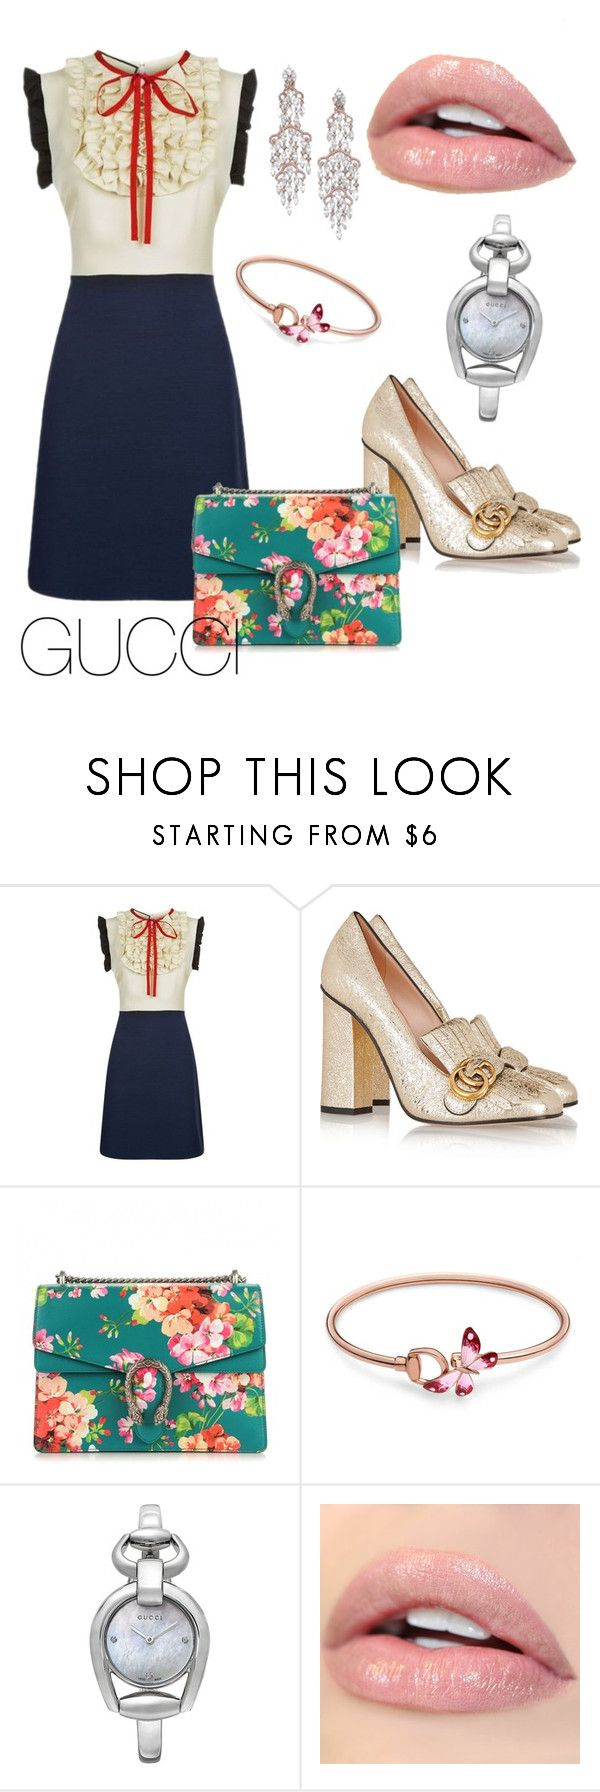 """outfit#92"" by alifia-fae on Polyvore featuring Gucci"